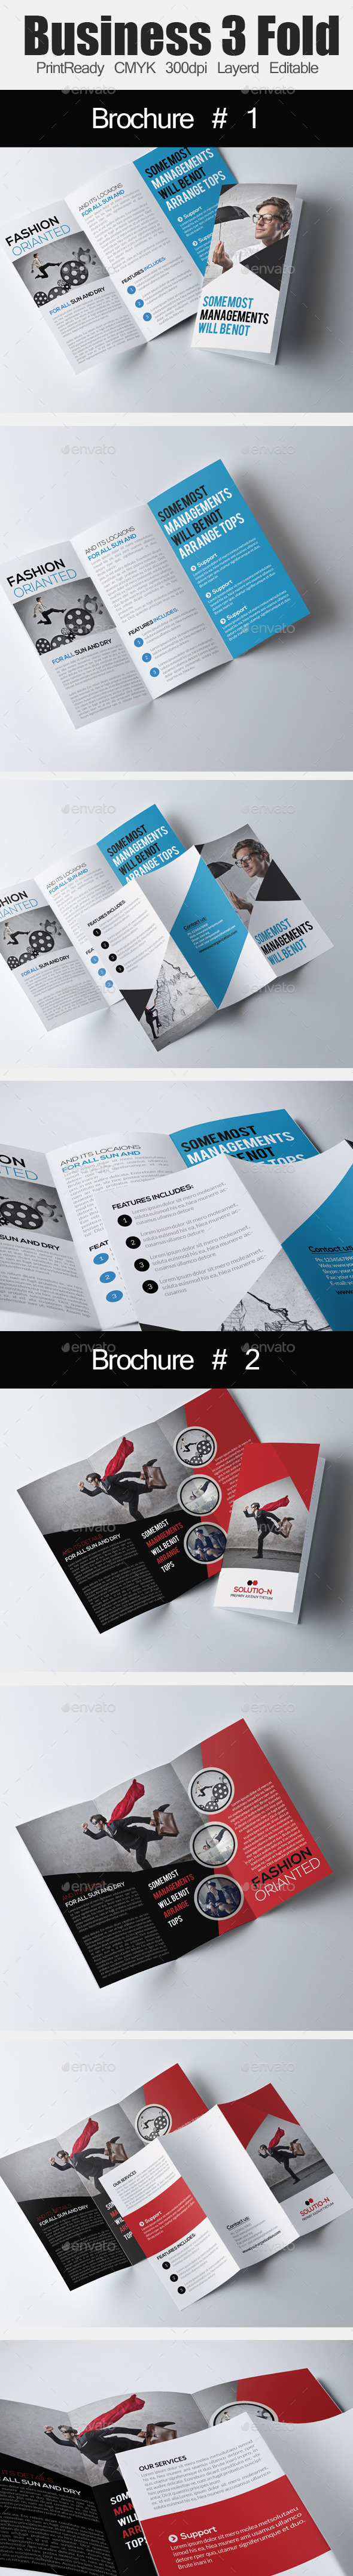 Tri Fold Business Brochure Bundle - Corporate Brochures